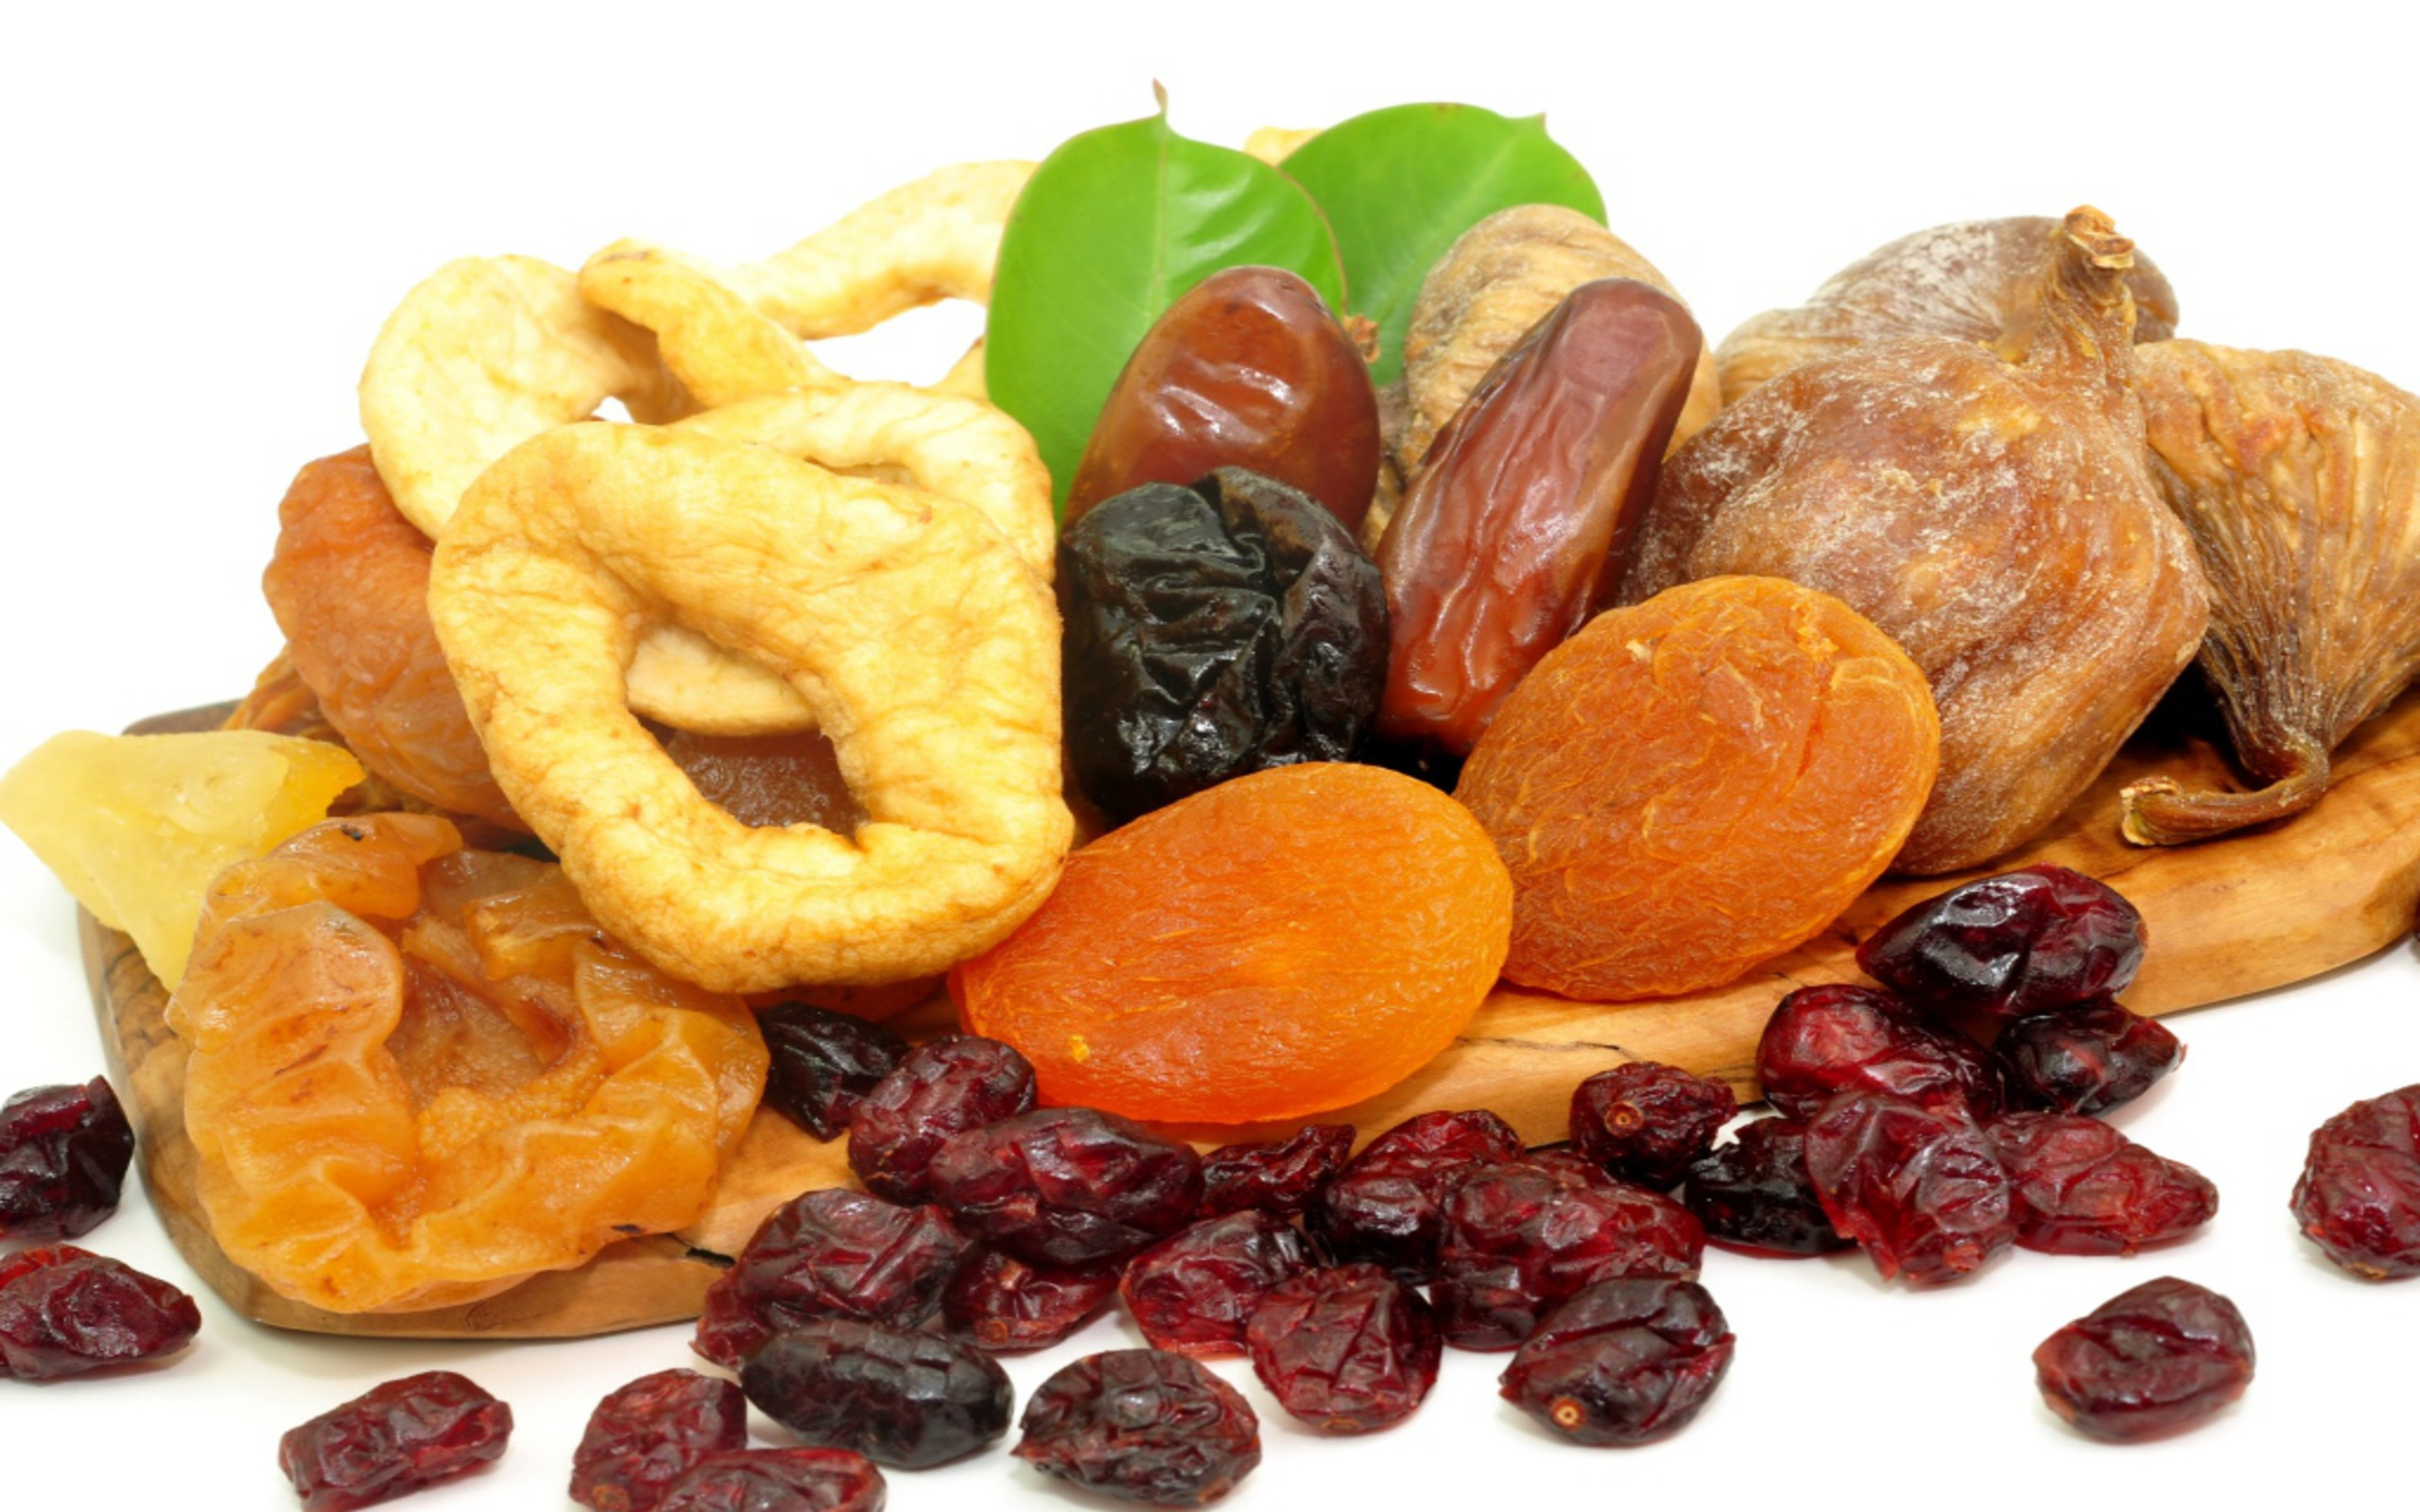 A dried fruit